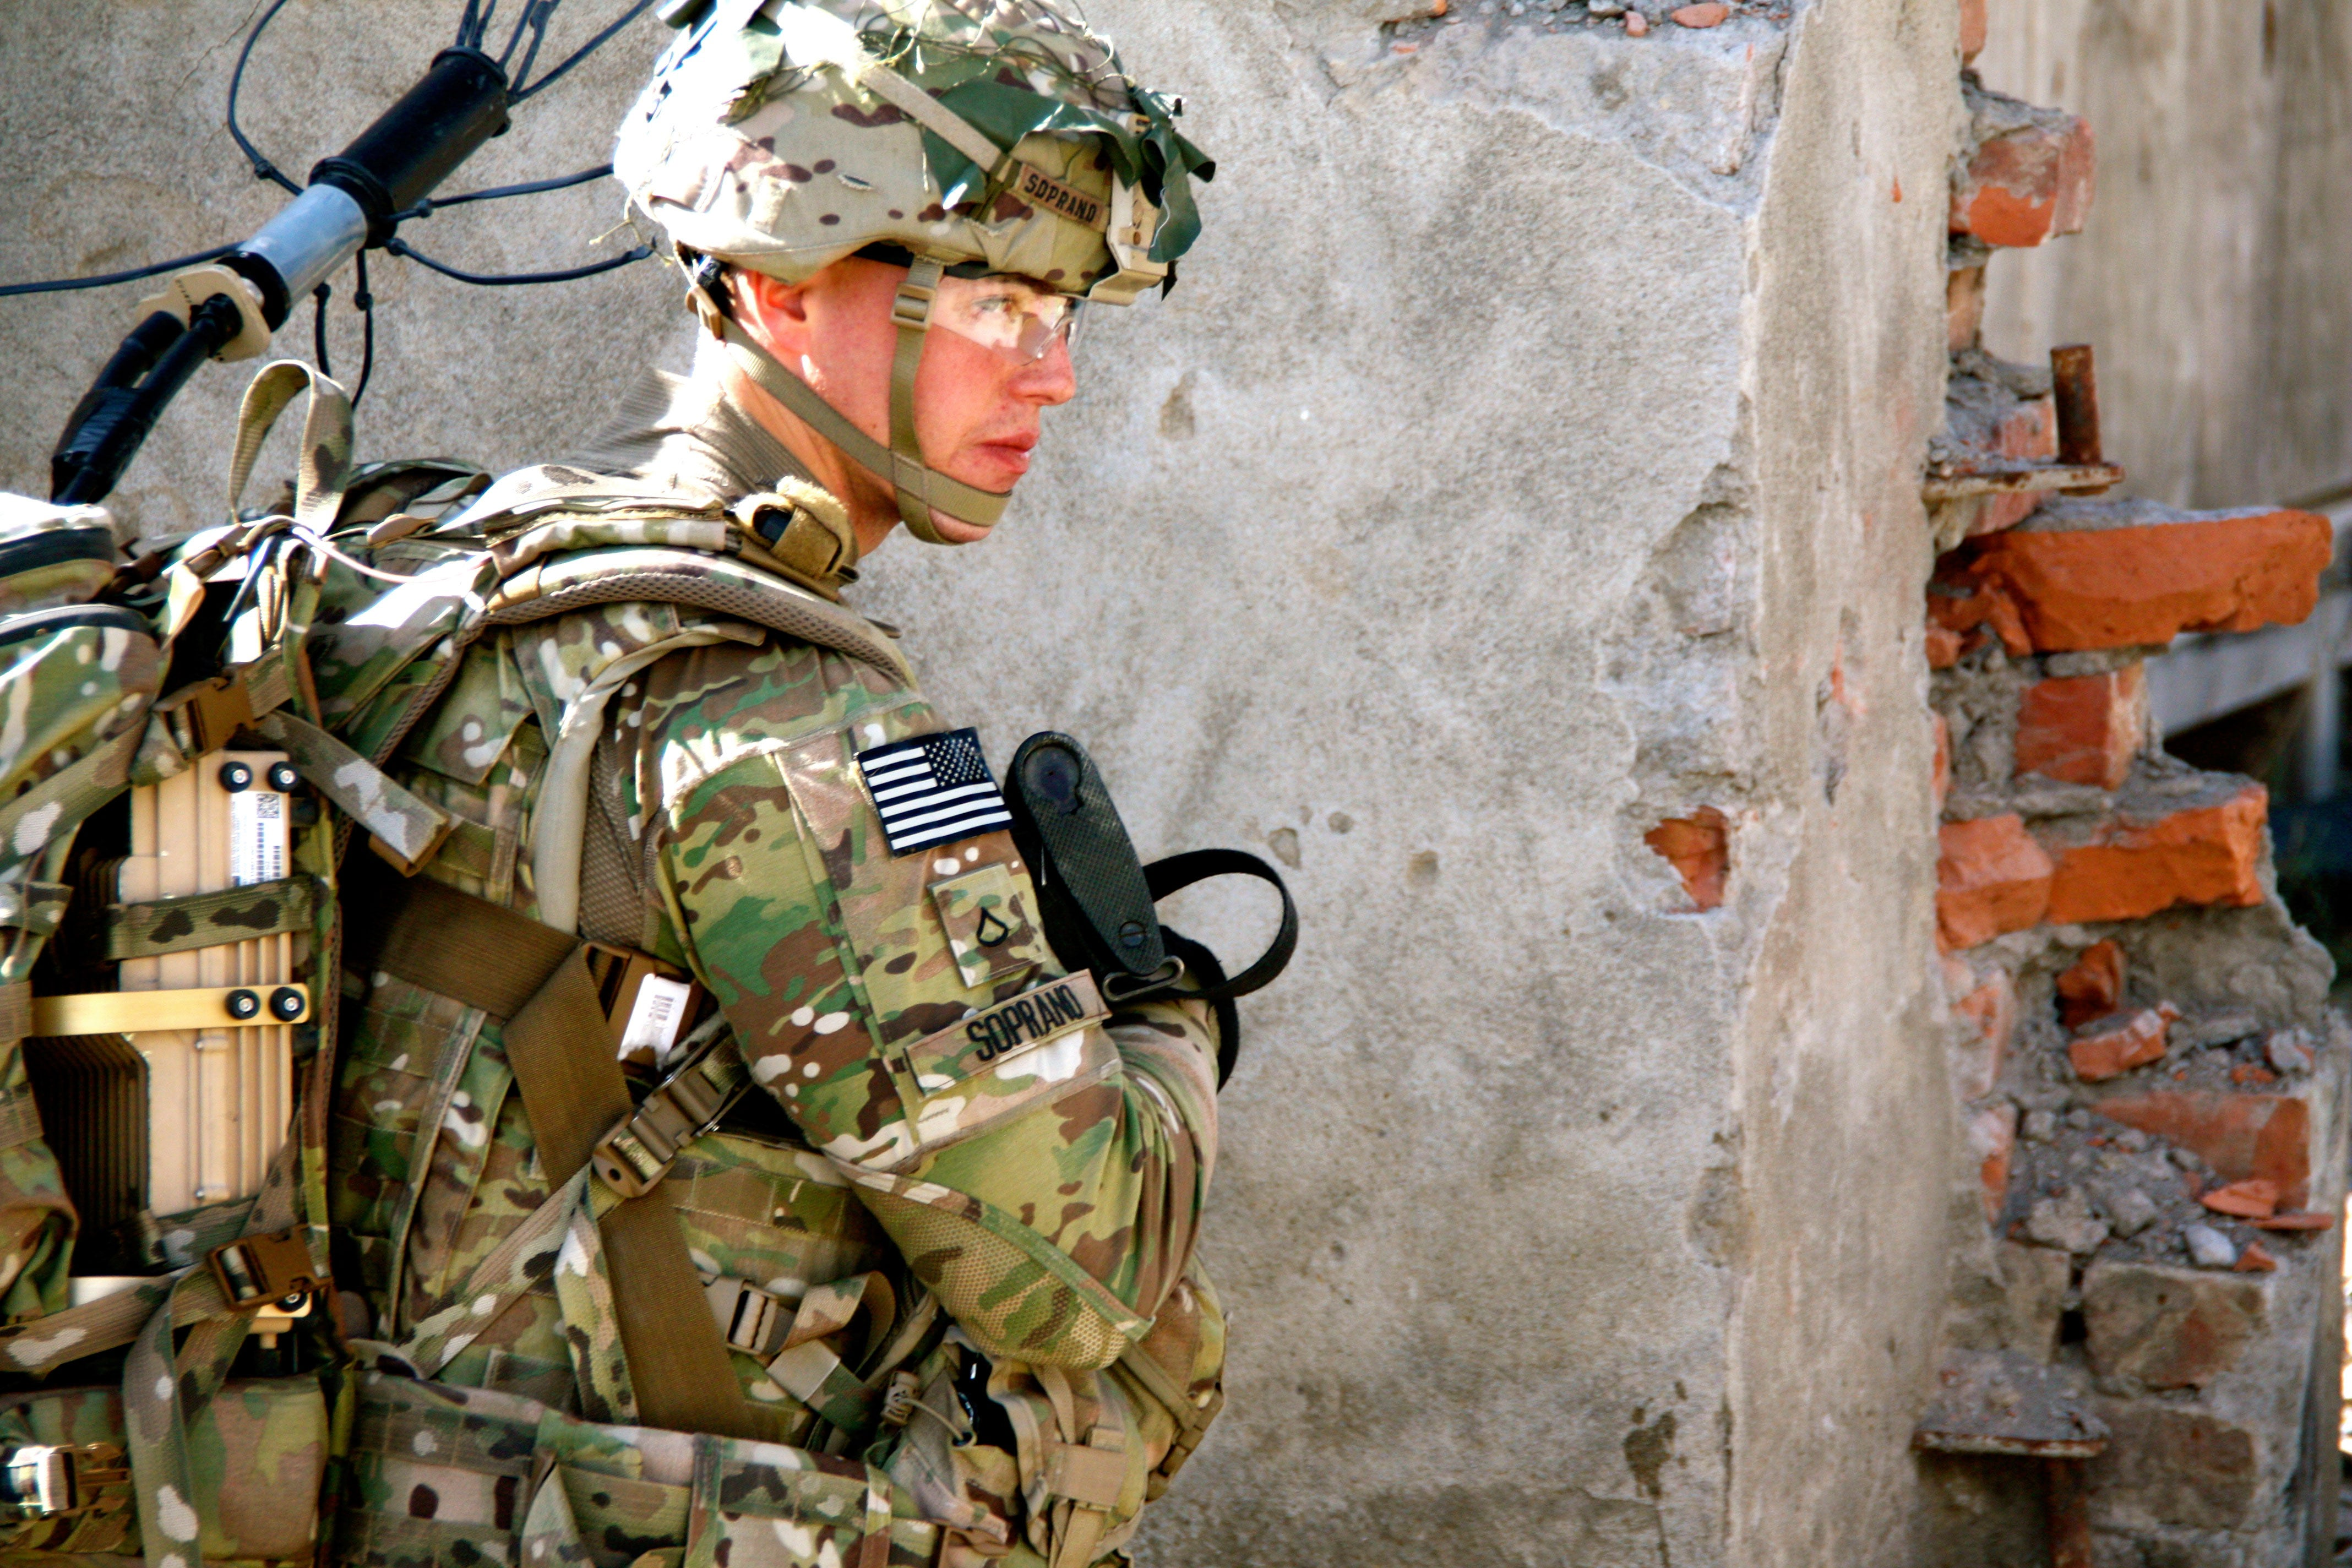 Less than 8 percent of the U.S. population has served in the armed forces.